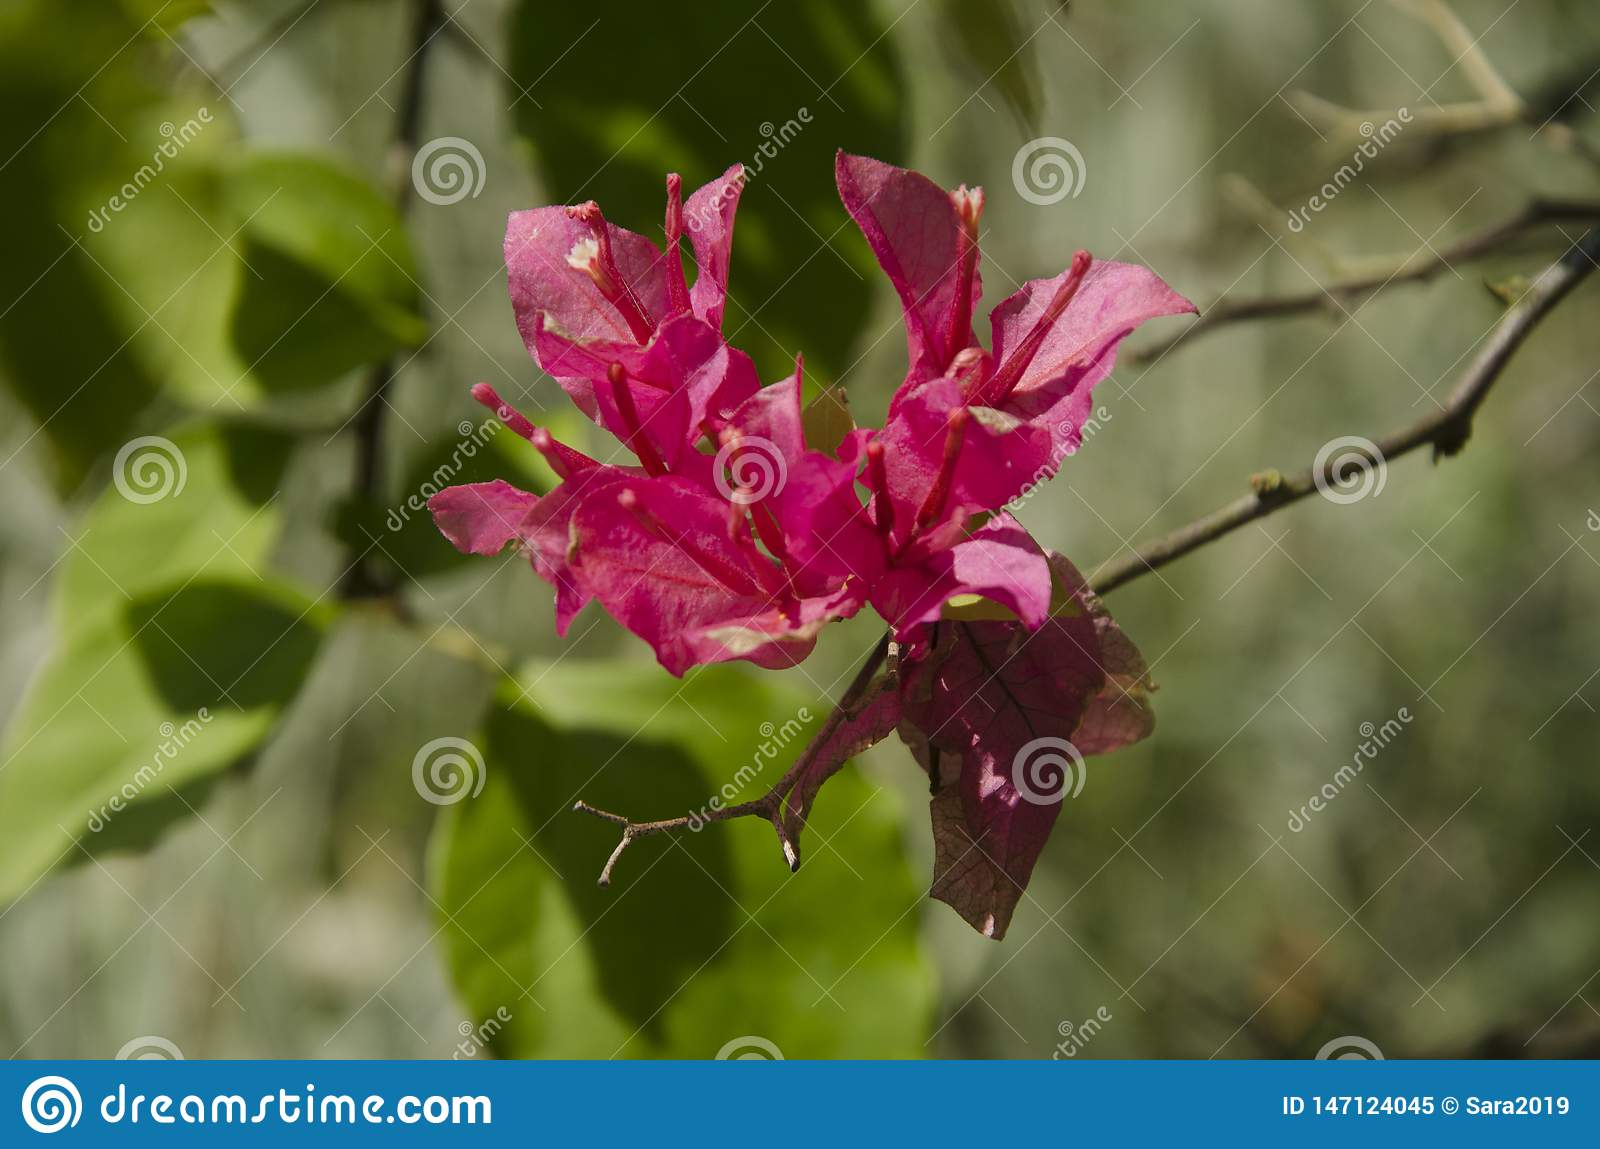 A beautiful red flower on a branch